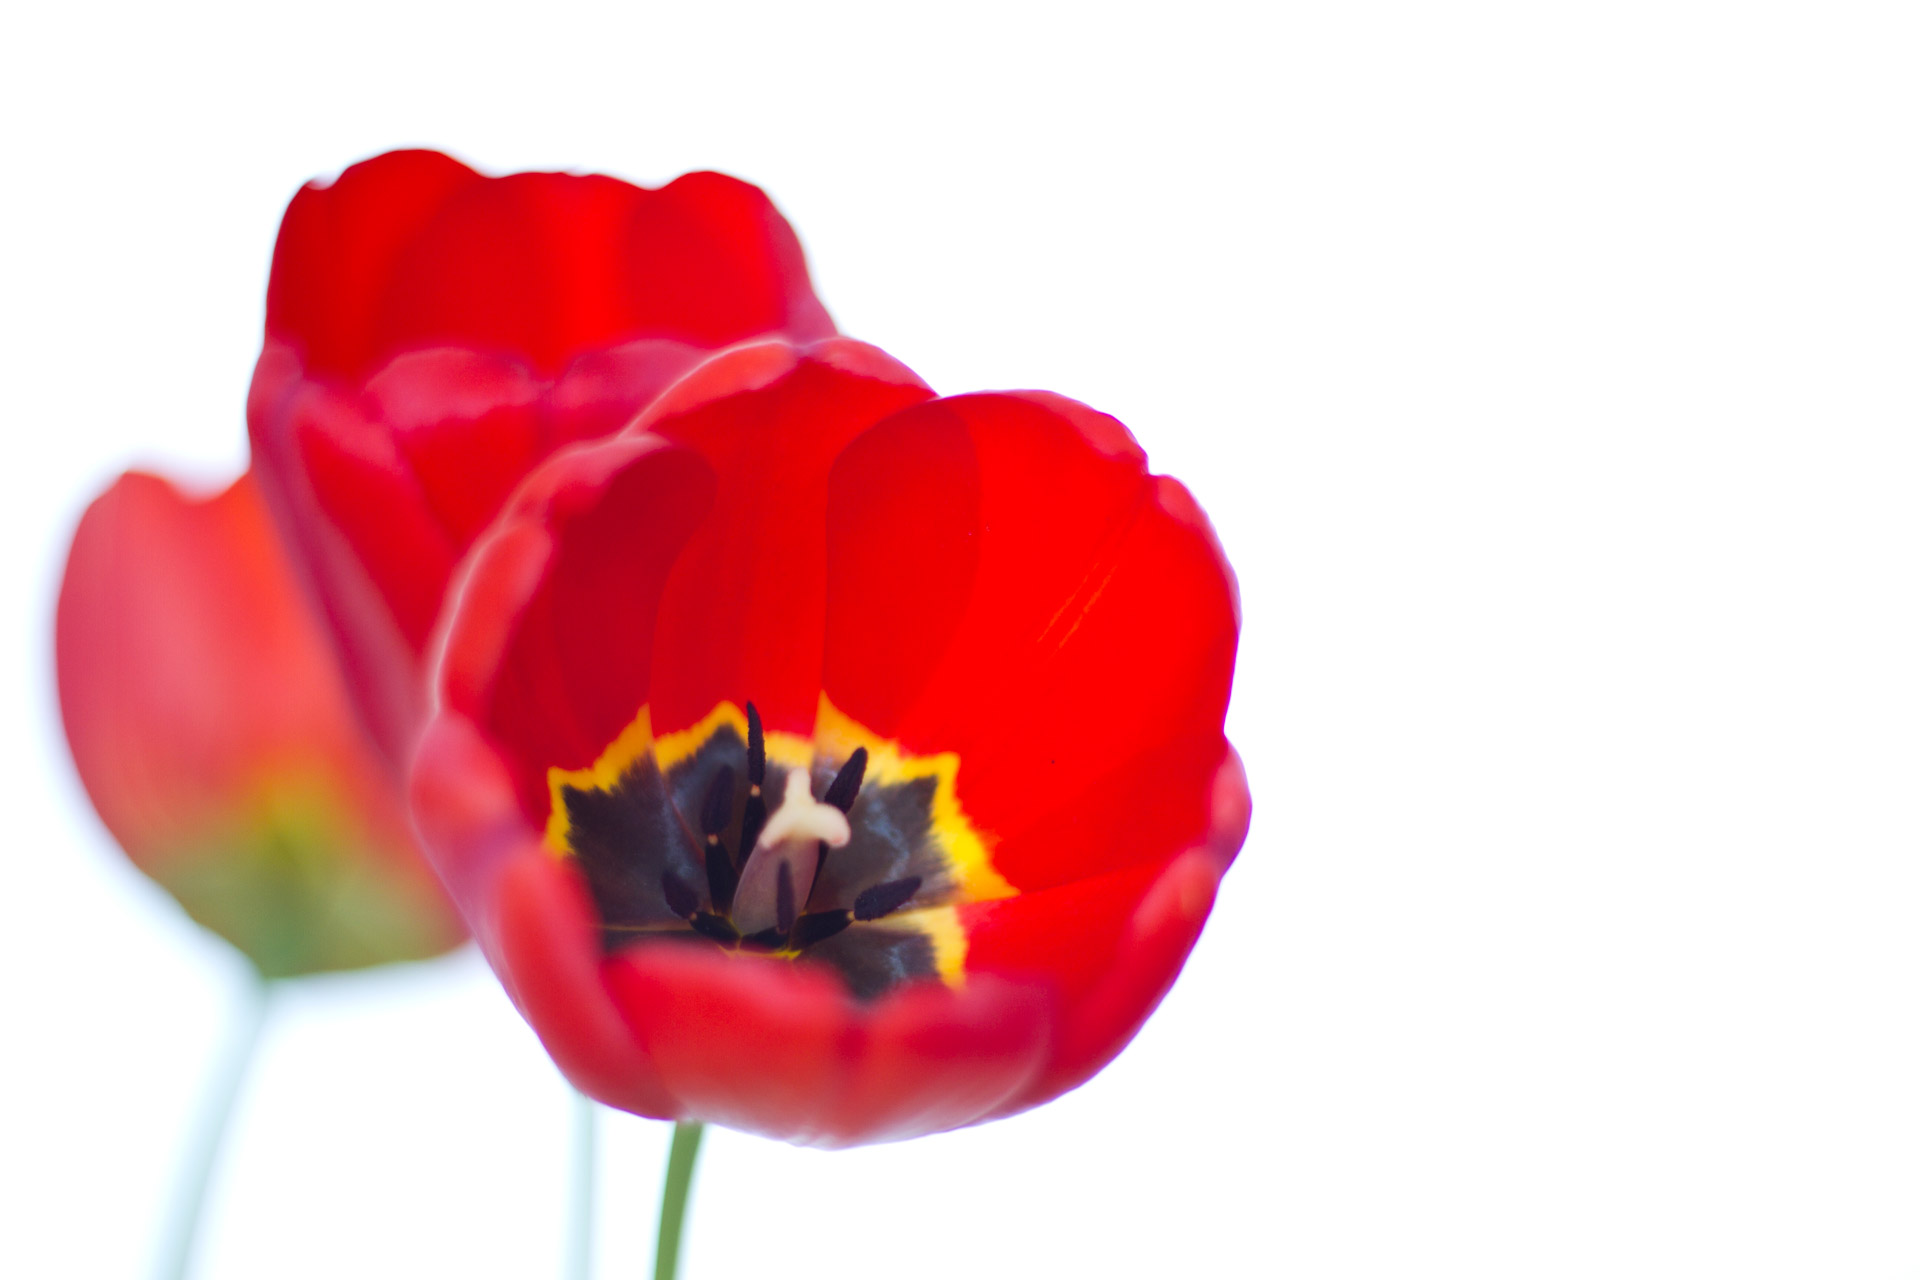 Red Tulips Free Stock Photo - Public Domain Pictures